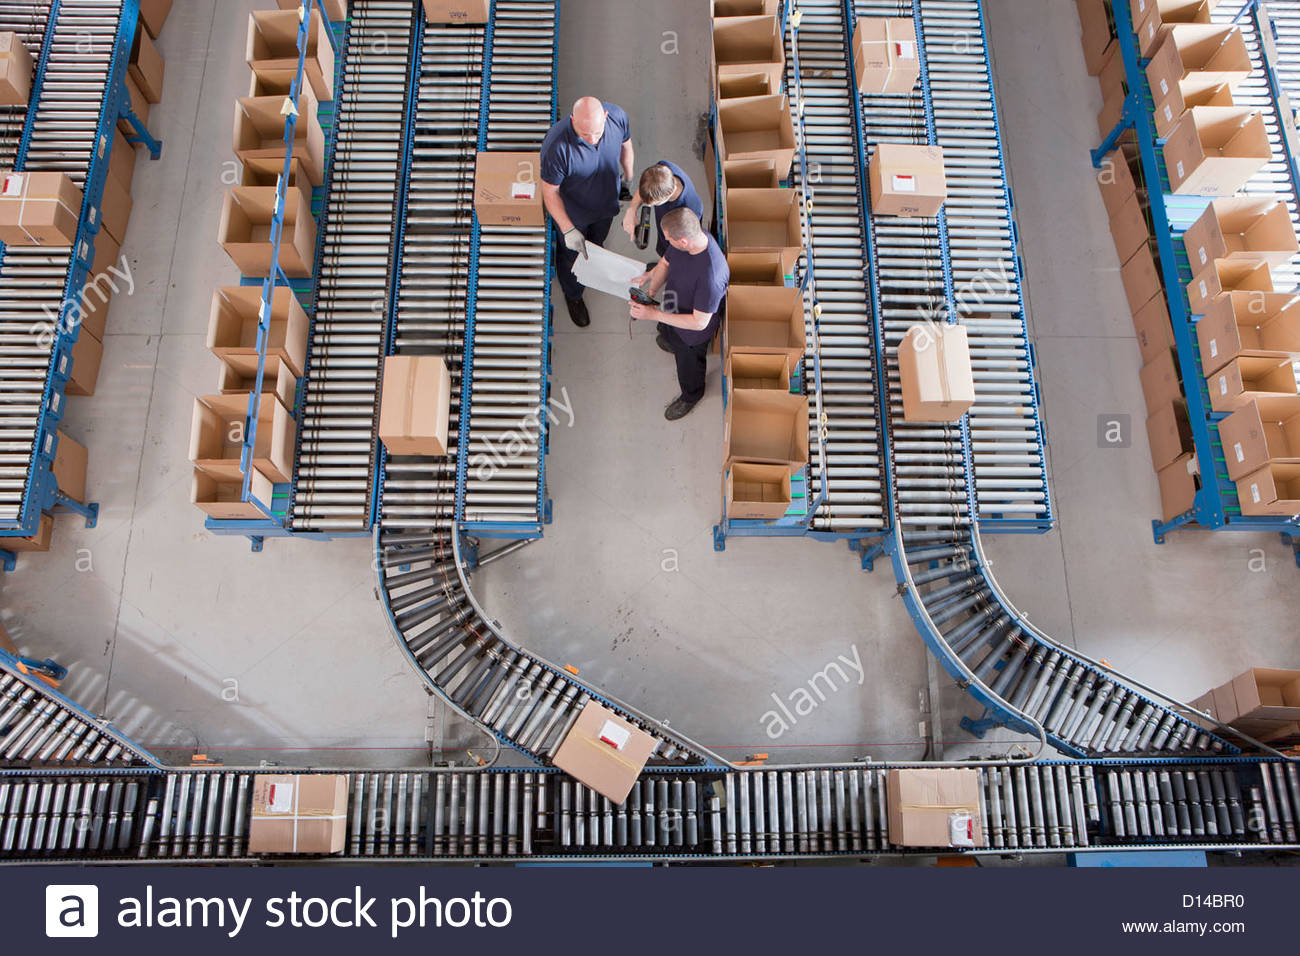 Workers meeting among boxes on conveyor belts in distribution warehouseStock Photo